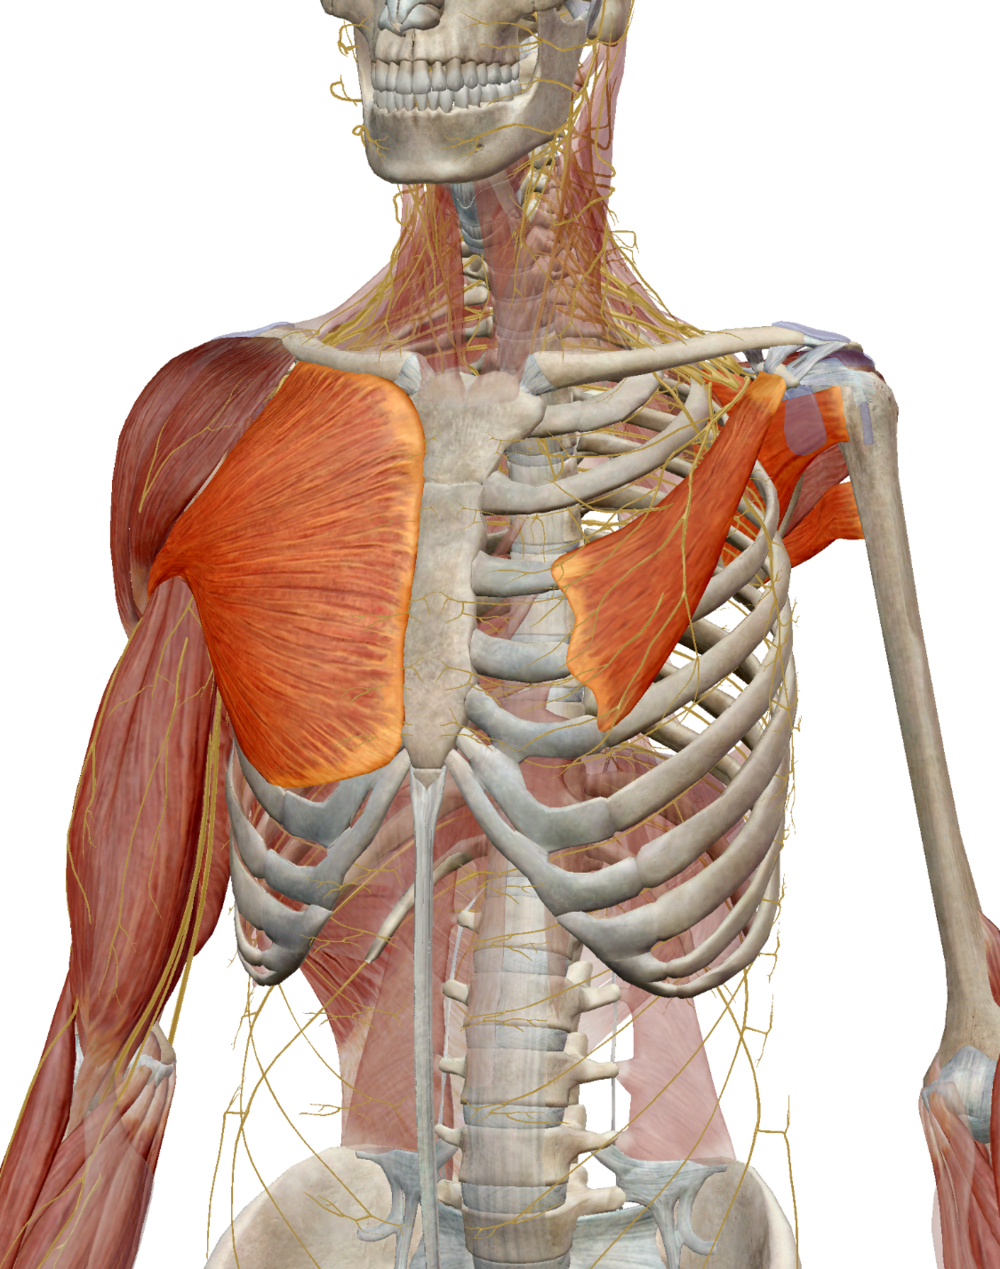 Highlighted Right to Left: Pectoralis Major, Pectoralis Minor, Subscapularis, Teres Major